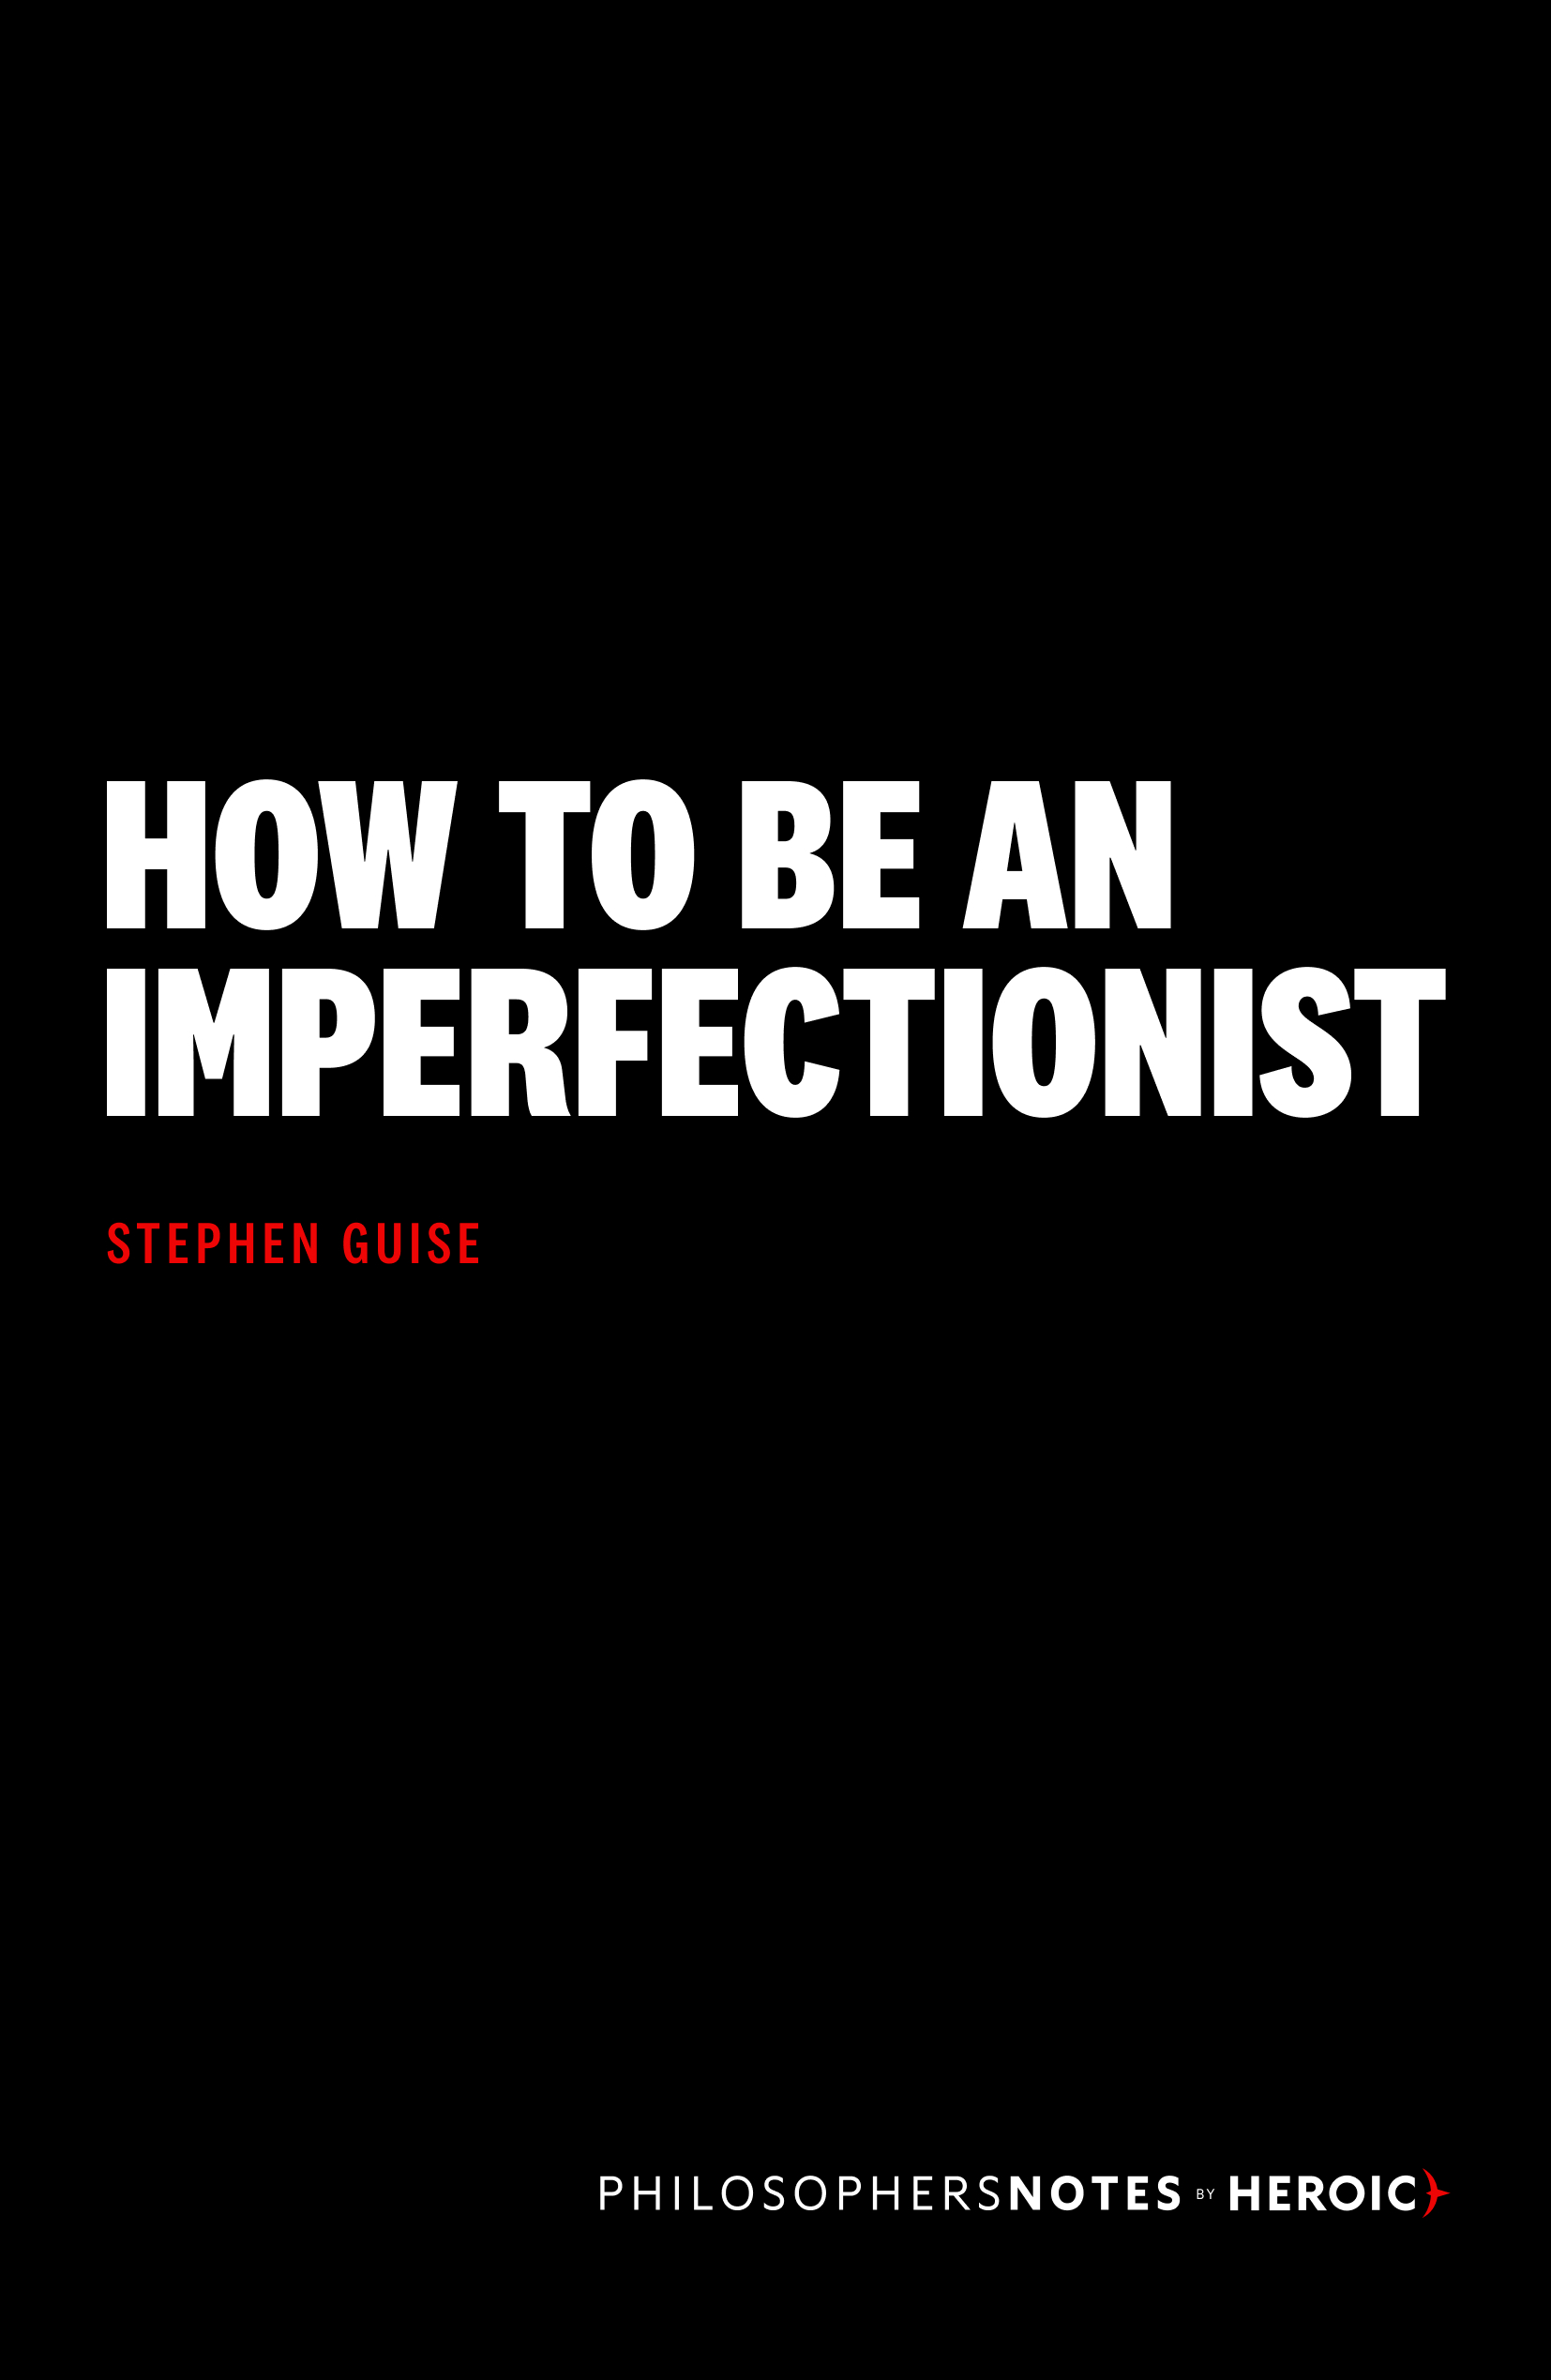 How to Be an Imperfectionist